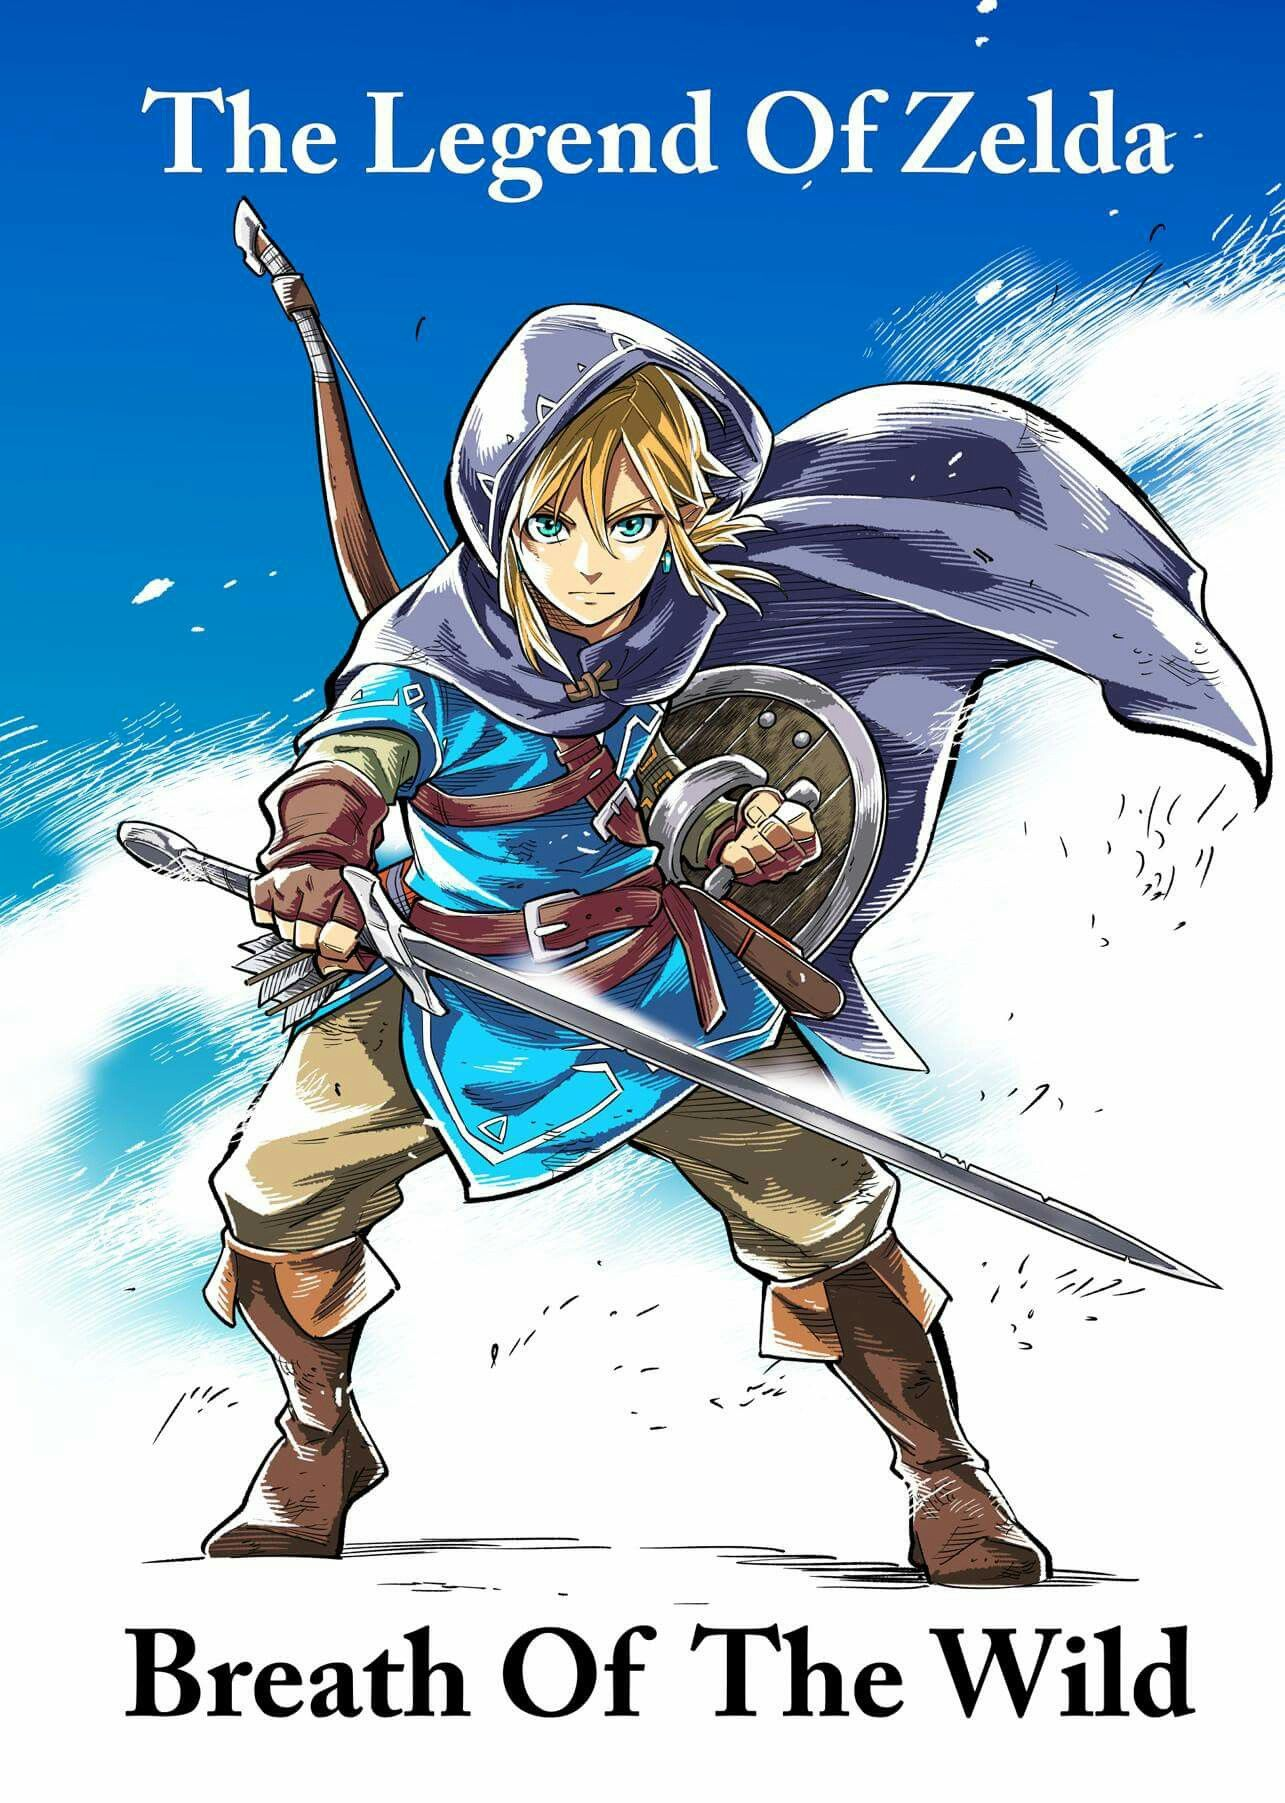 """I love  The Legend of Zelda  Breath of The Wild  I played on the Nintendo Switch  version.  n.n i'm likely  to finish  it  in May what  a """"Breath taking adventure!"""" I cannot wait for the DLC Expansion Pass"""